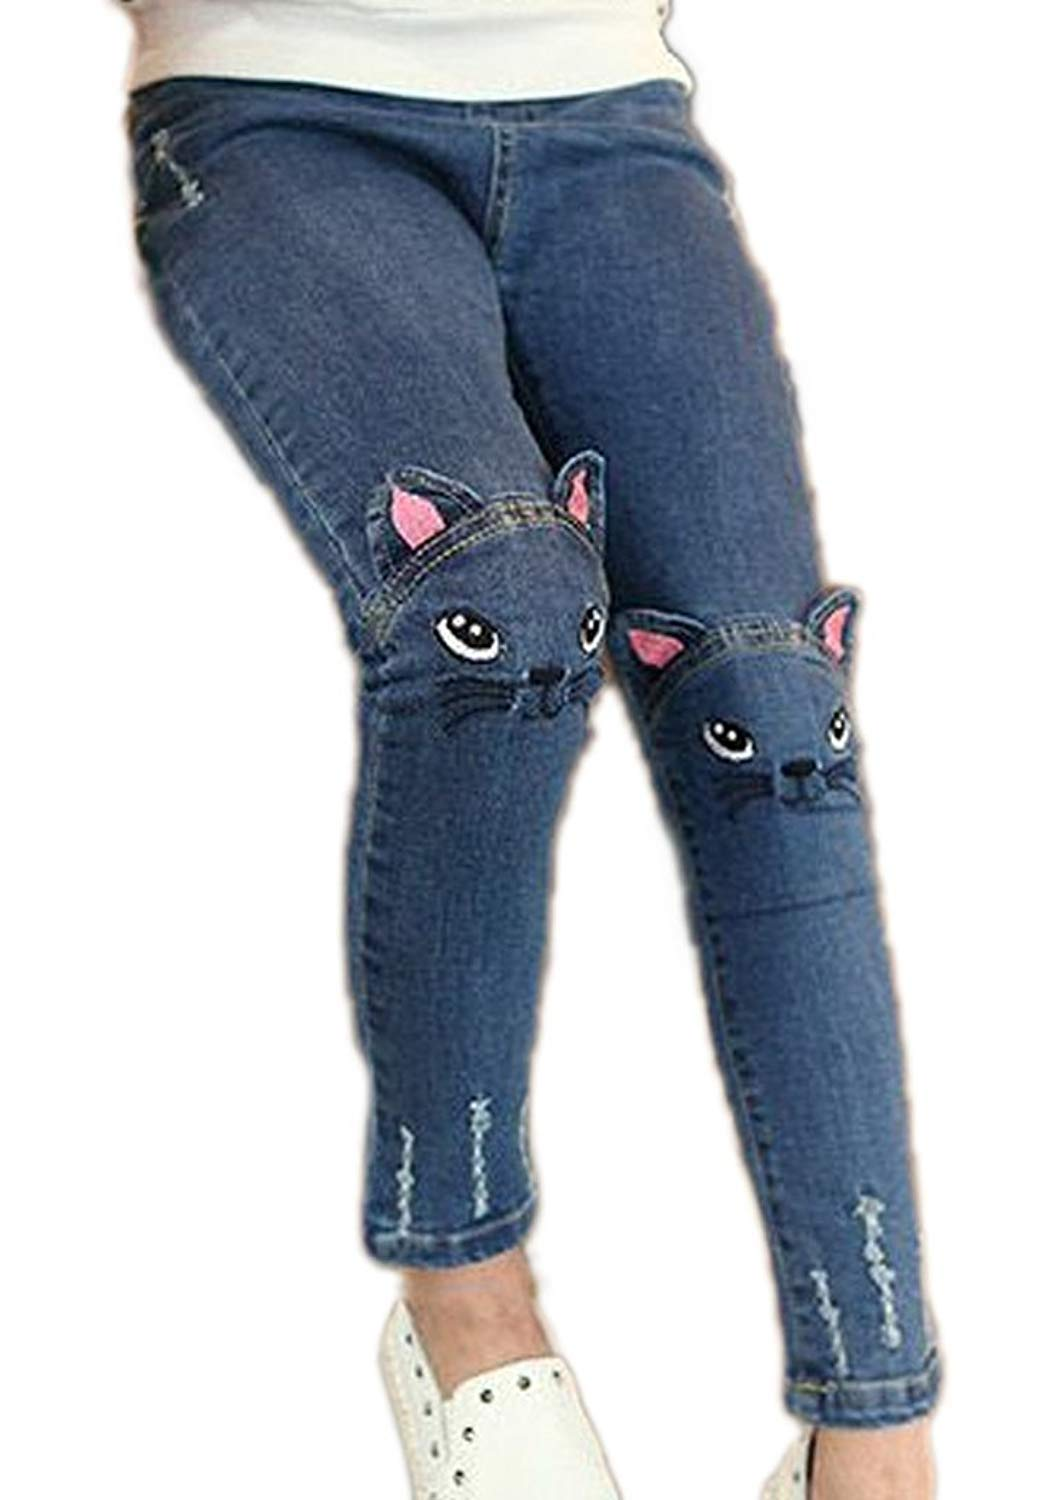 Sitmptol Girls Stretchy Jeans Kids Ripped Denim Trousers Jeggings Age 4-13 Years Blue 130